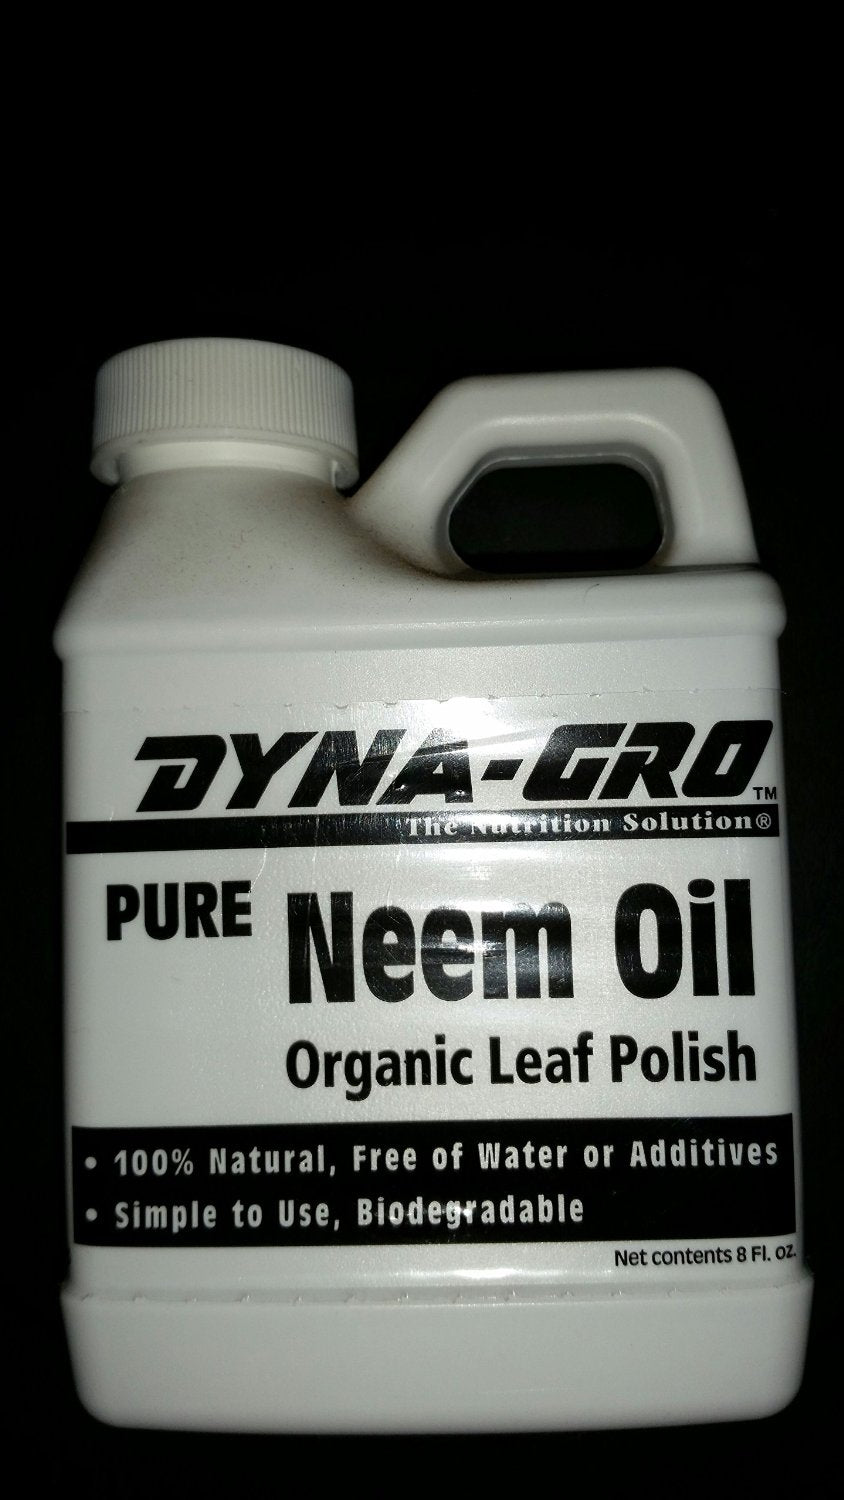 NEEM OIL ORGANIC, (concentrate), excellent organic pesticide, fungicide- made from natural neem tree seeds.great for vegetable gardening